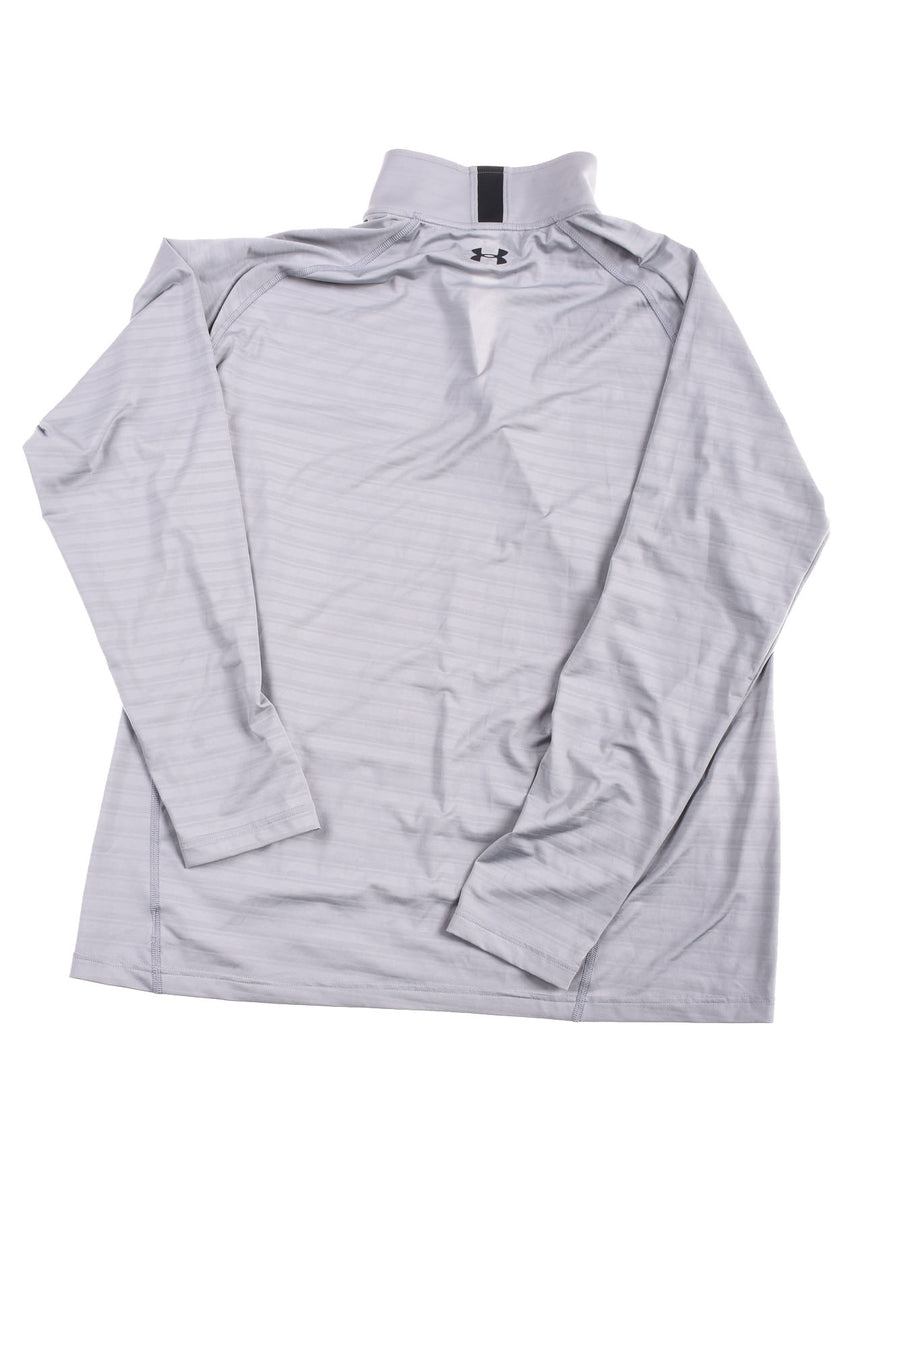 USED Under Armour Men's Shirt X-Large Gray